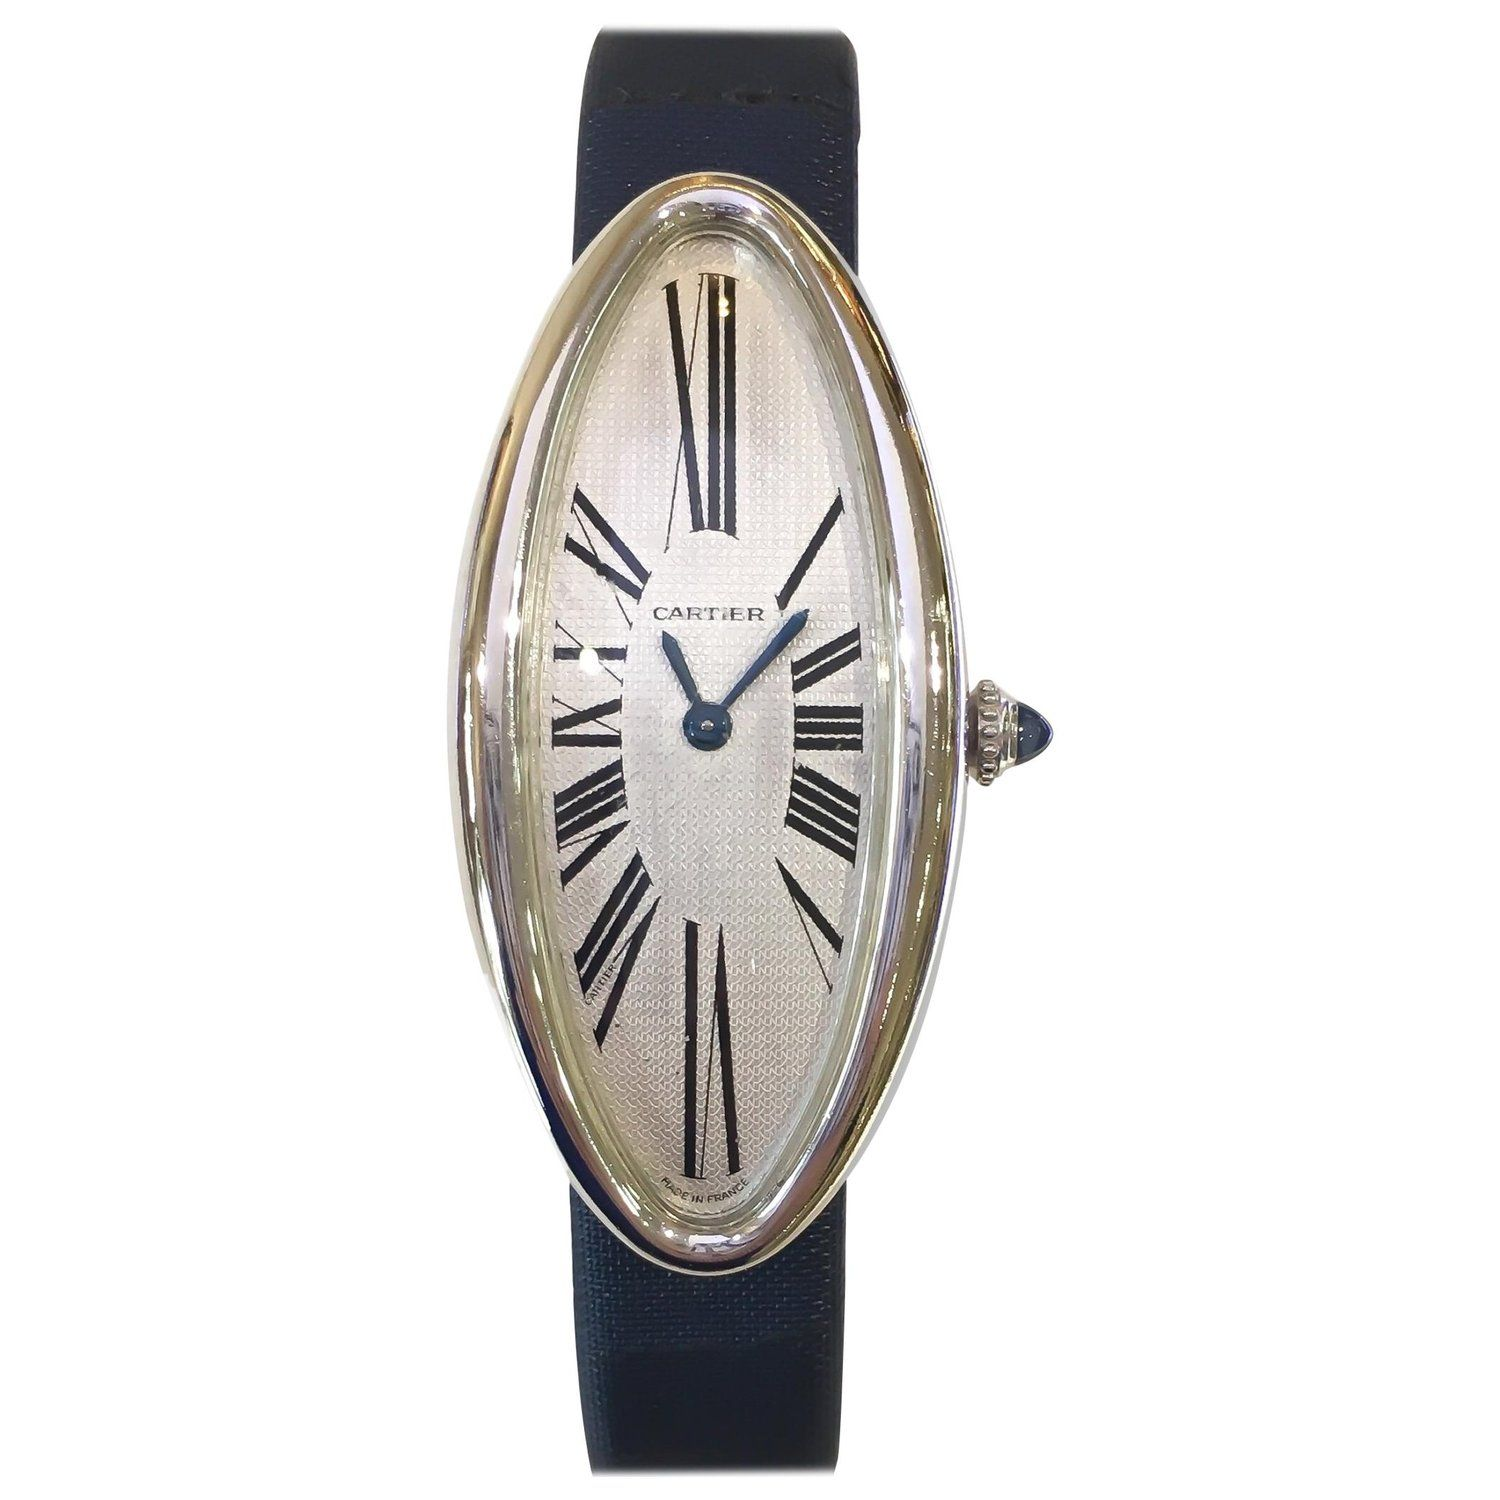 9704161d234f3 Cartier Tortue XL Large Women Watch Factory Diamond reference 2497 |  Vintage Women's Watches | Vintage watches women, Cartier, Watches